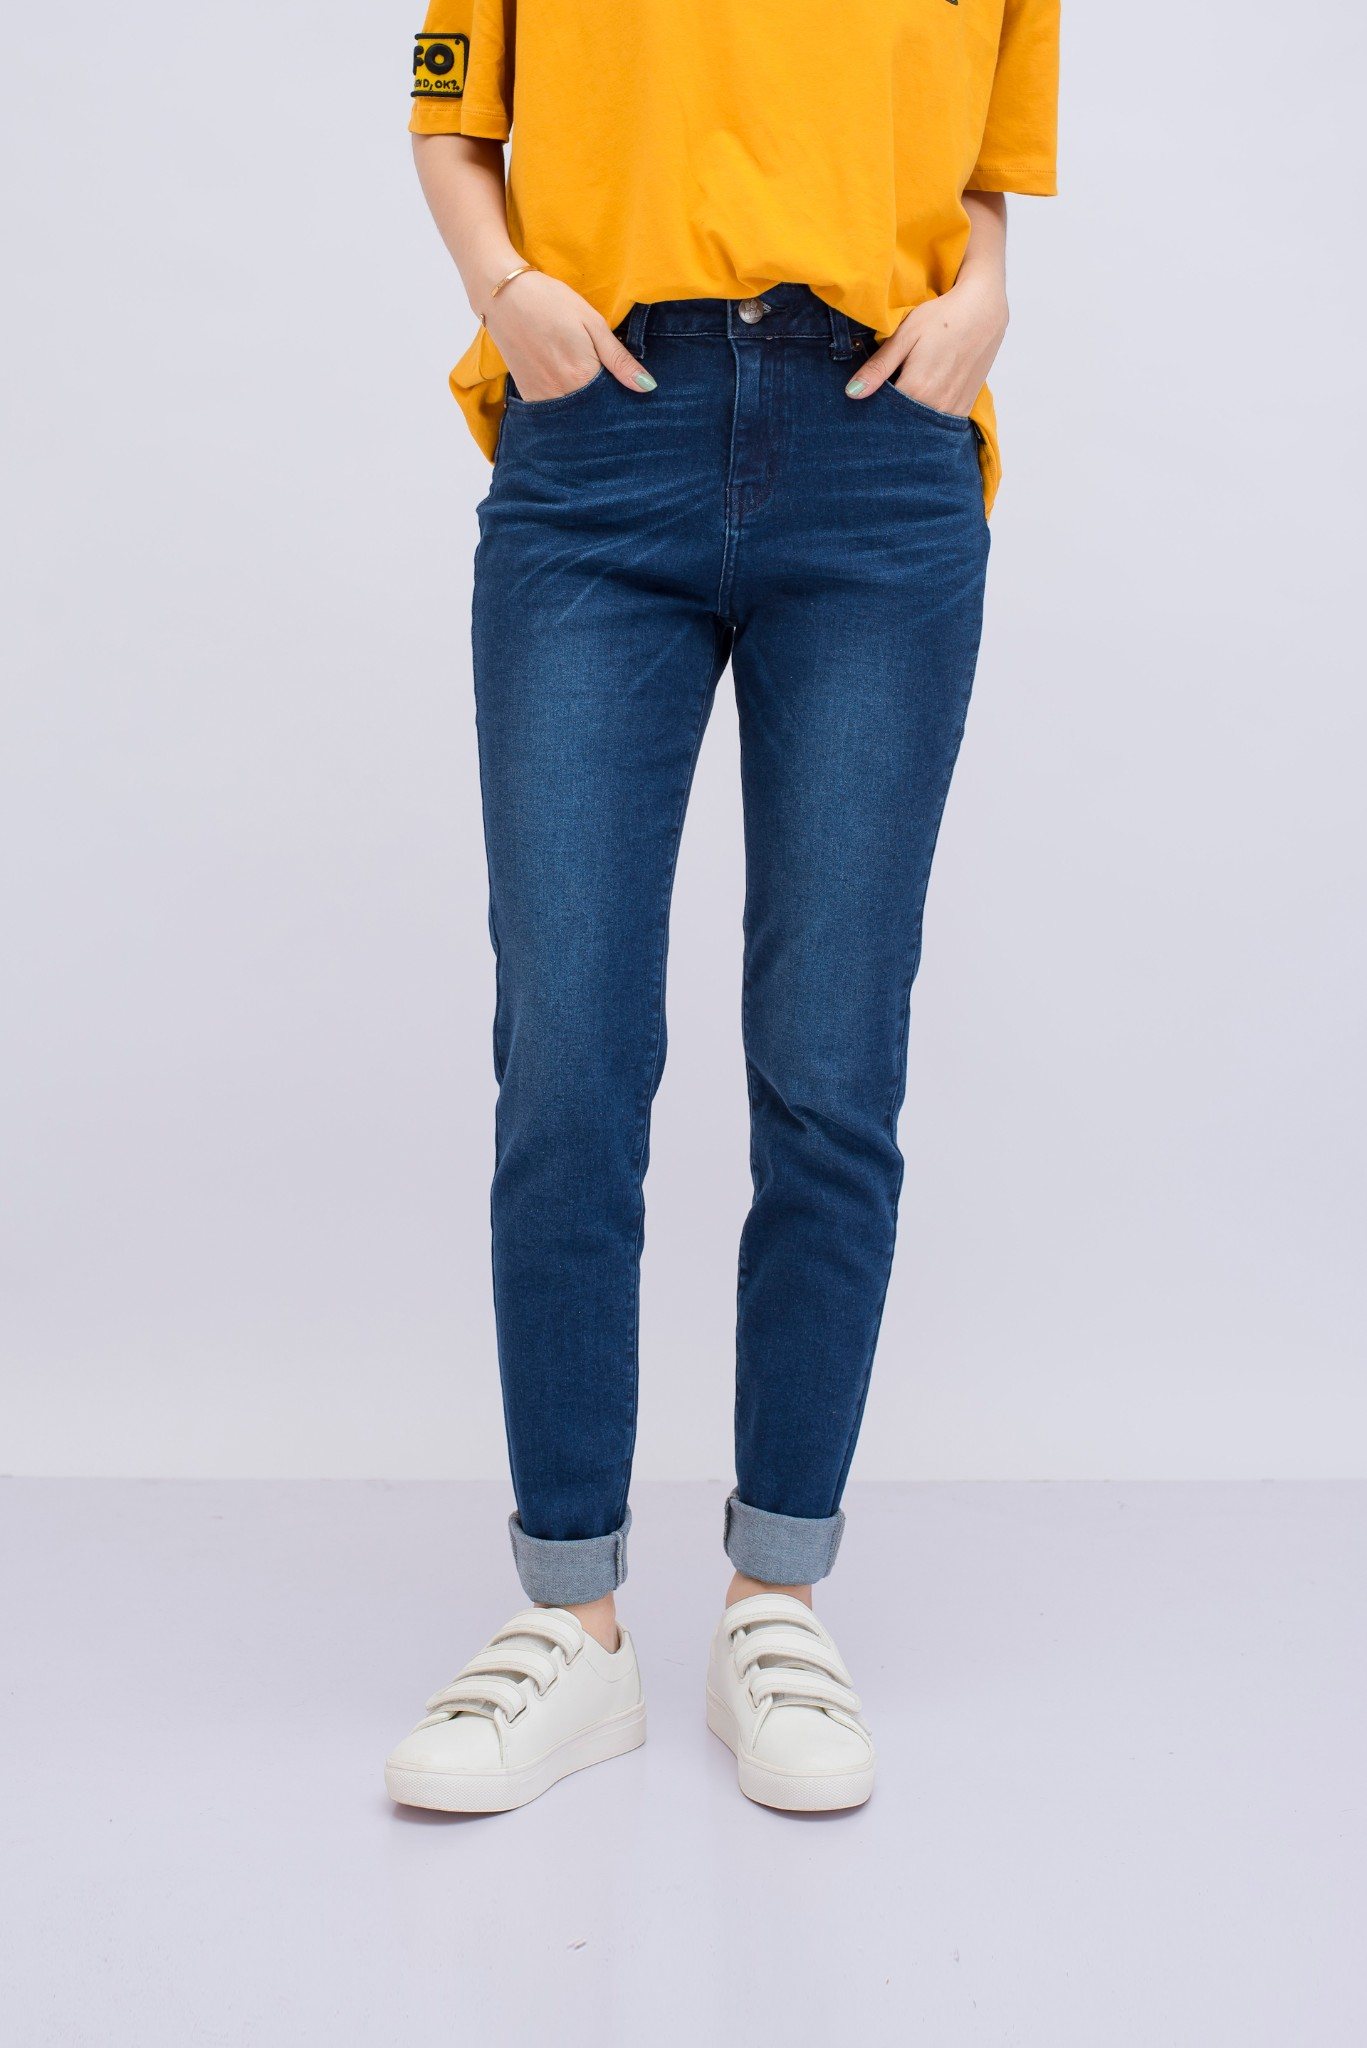 QUẦN JEANS Nữ SKINNY PUSH UP BS